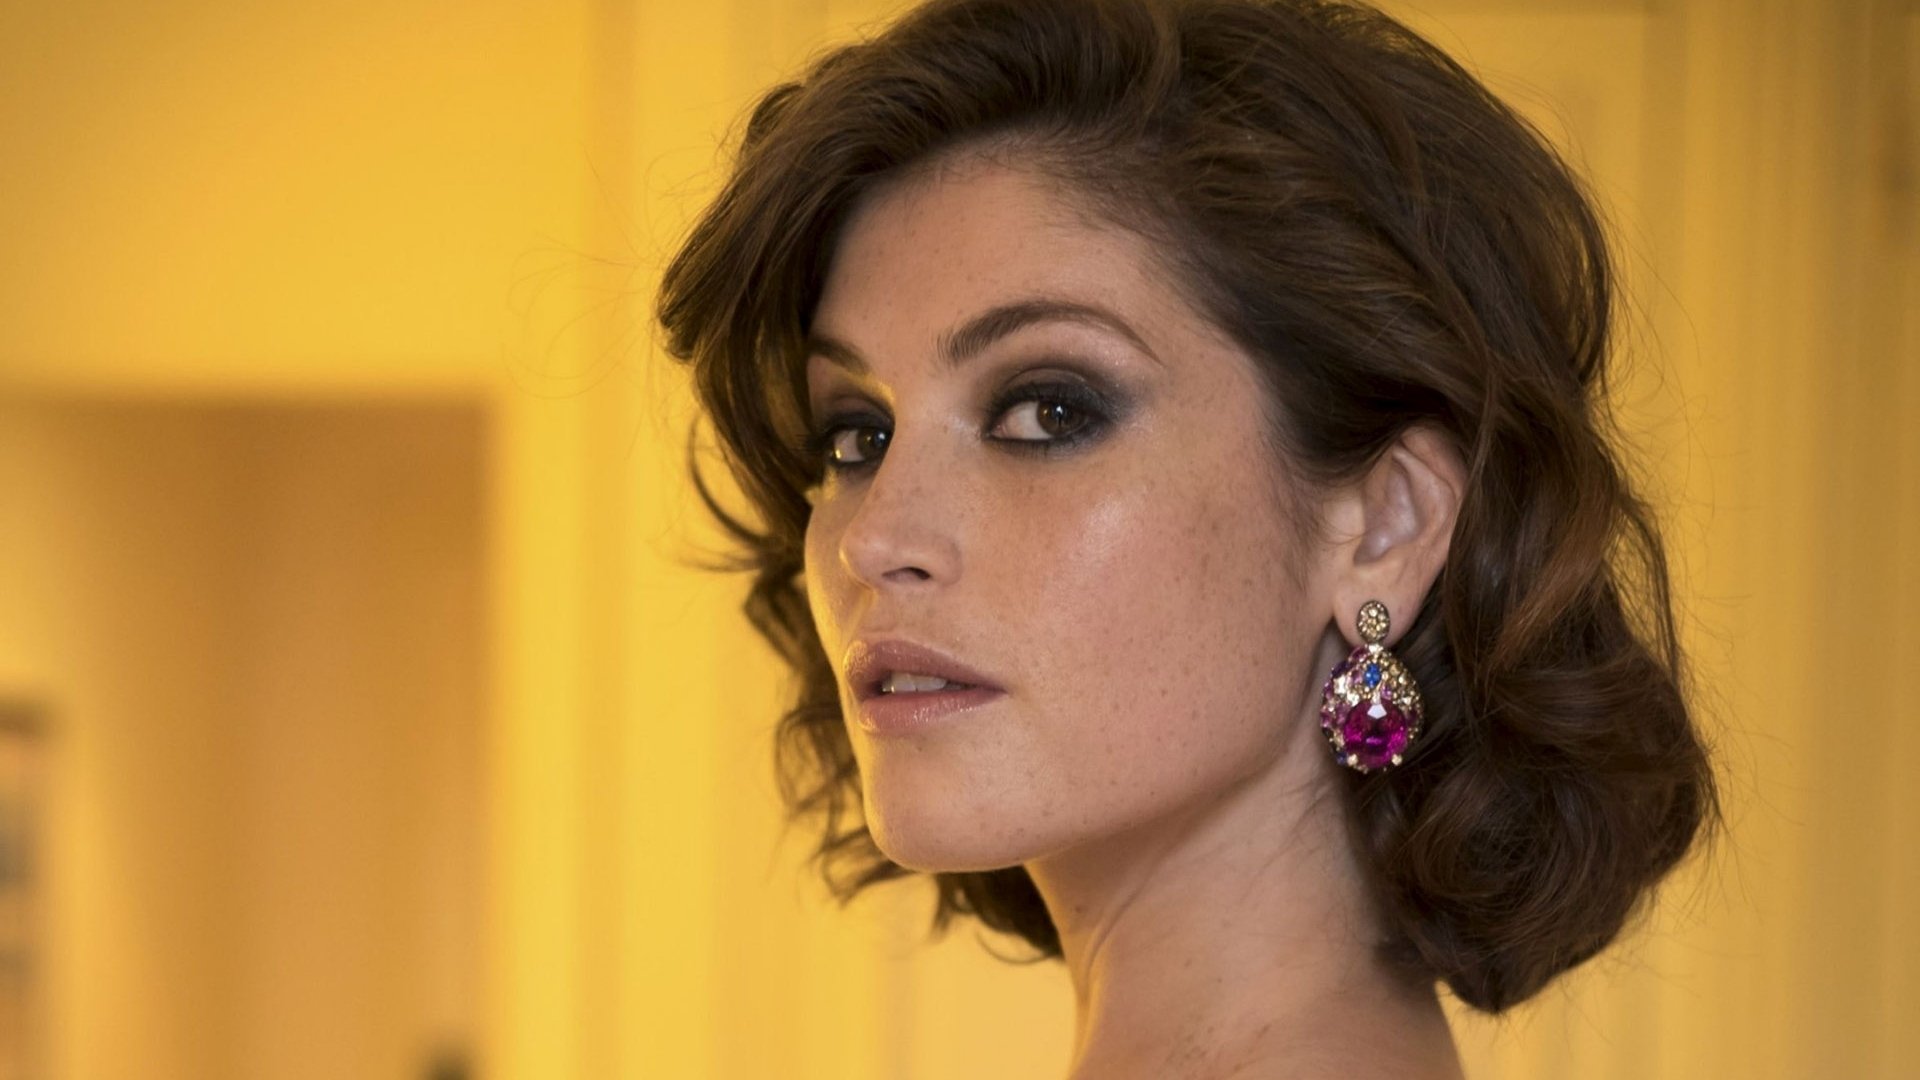 Gemma arterton wallpapers high resolution and quality download - Celeb wallpapers ...